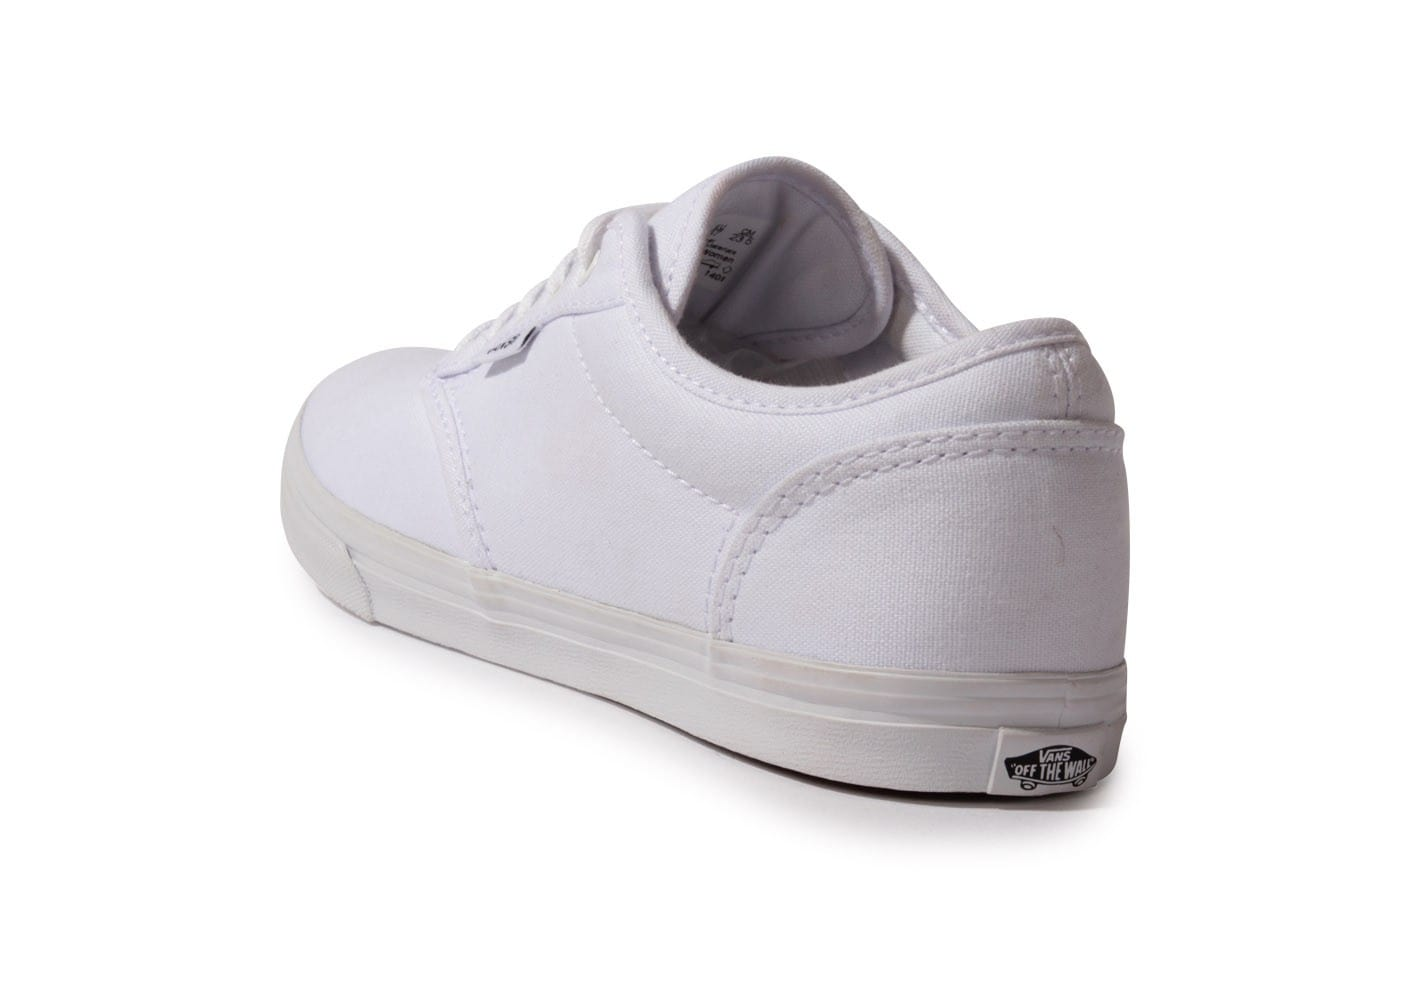 Vans Atwood blanche Chaussures Chaussures Chausport